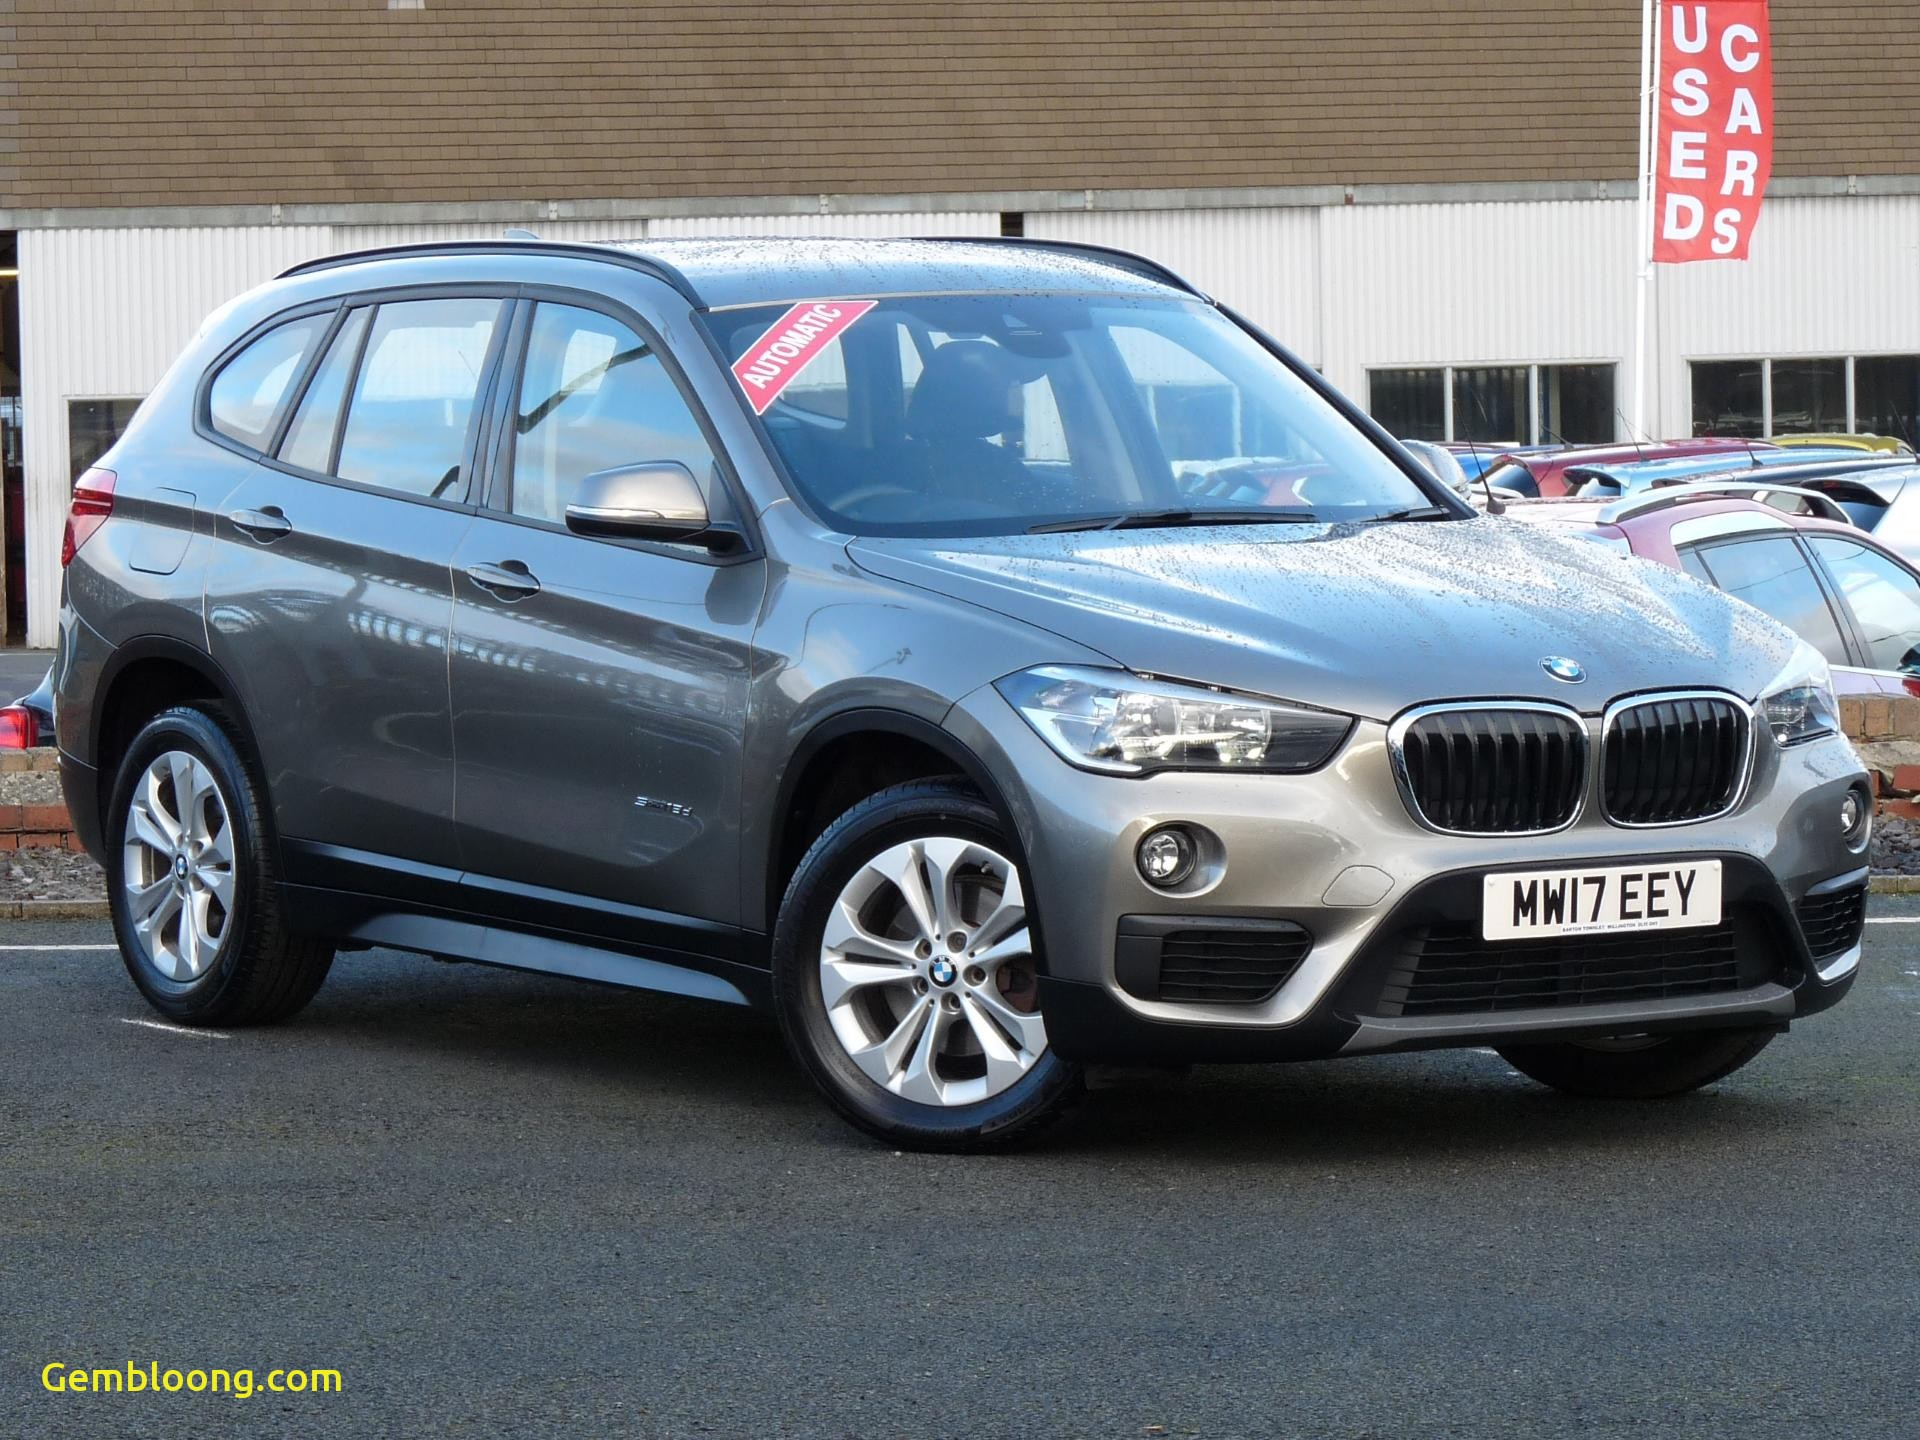 Bmw X1 for Sale Lovely Bmw X1 Sdrive 18d